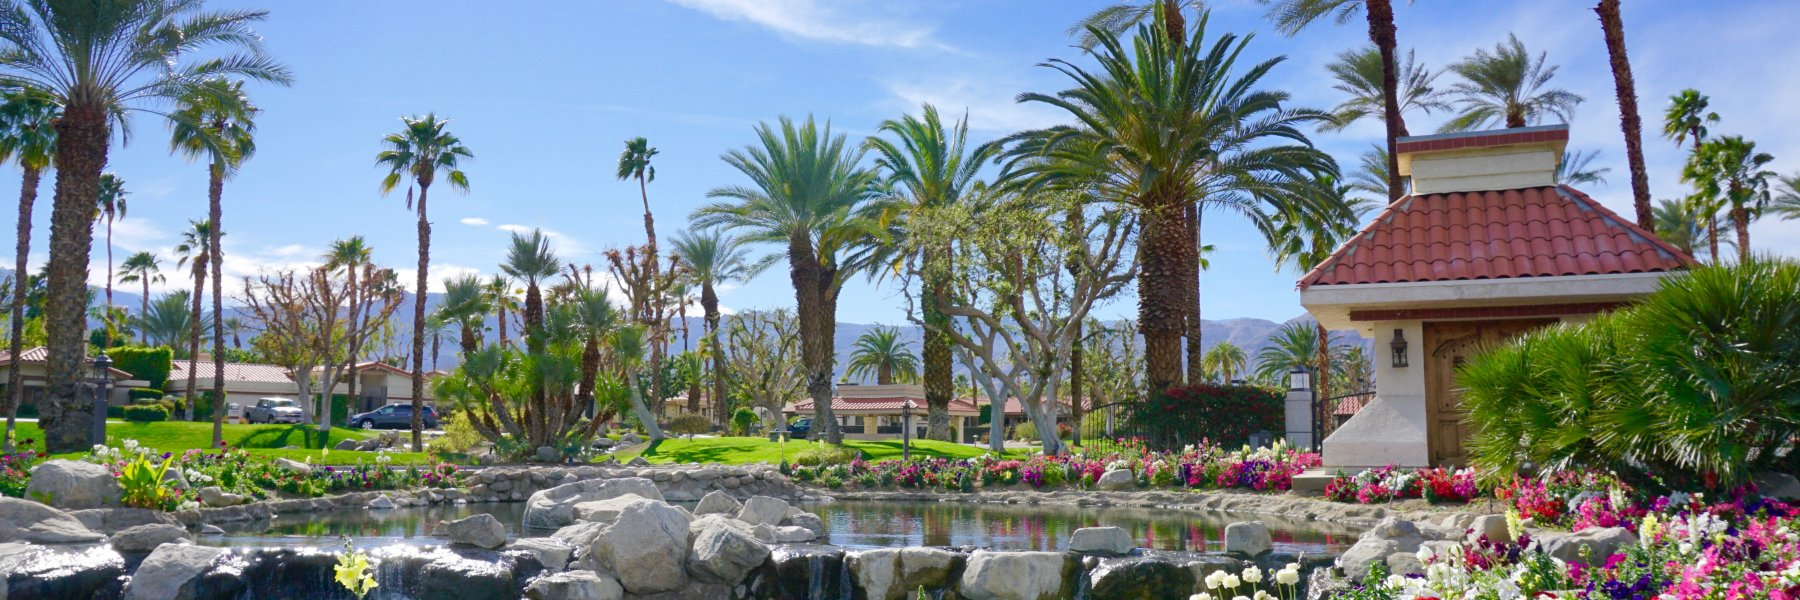 Los Lagos is a community of homes in Indian Wells, California